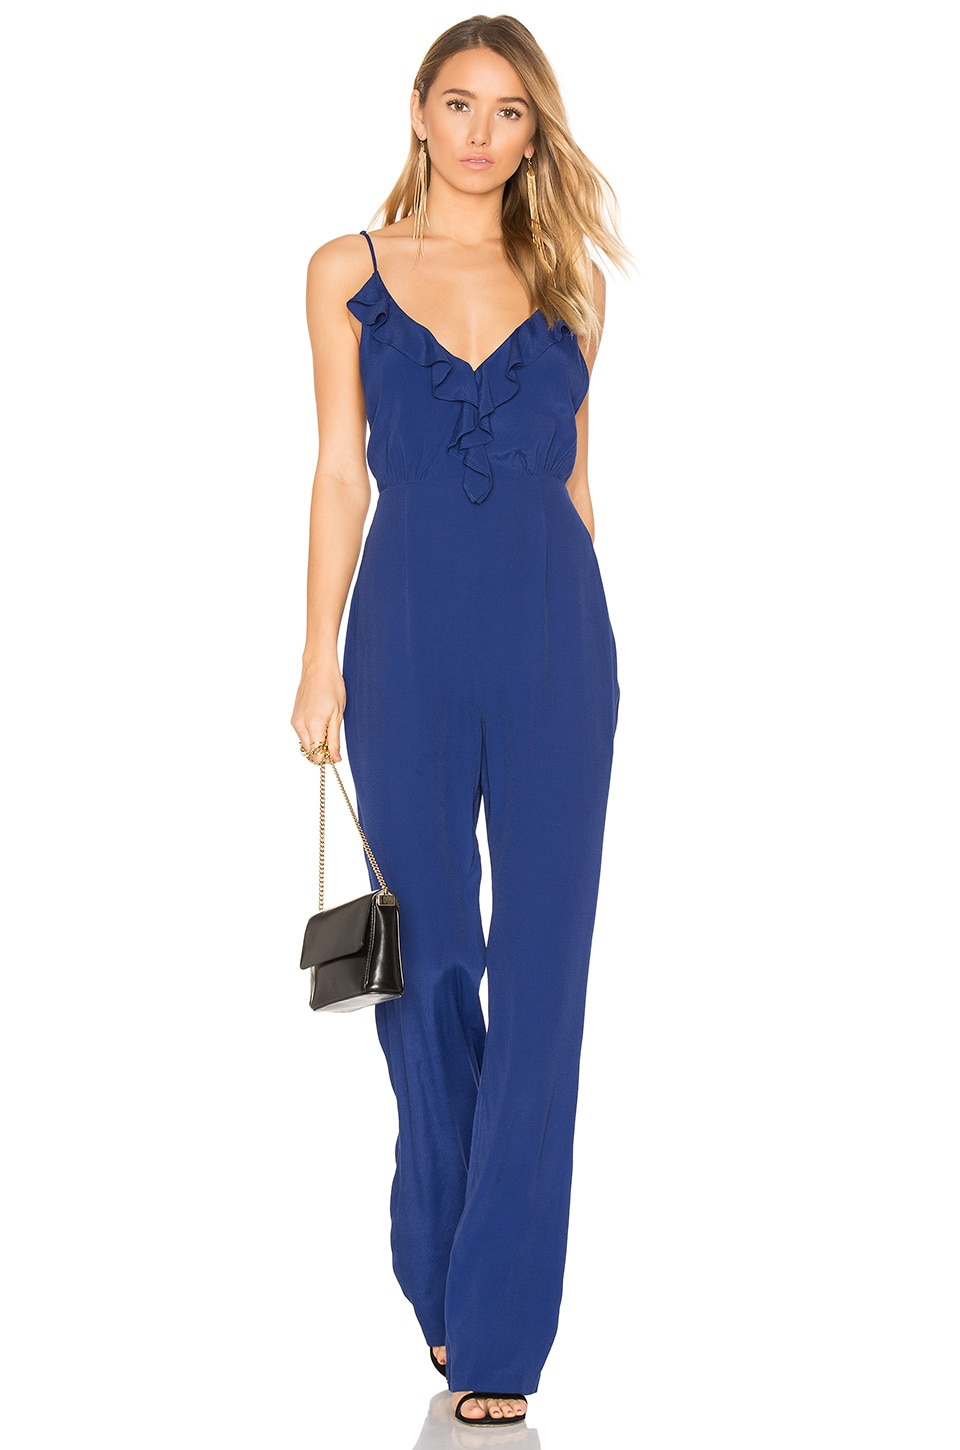 Privacy Please Bedford Jumpsuit in Navy